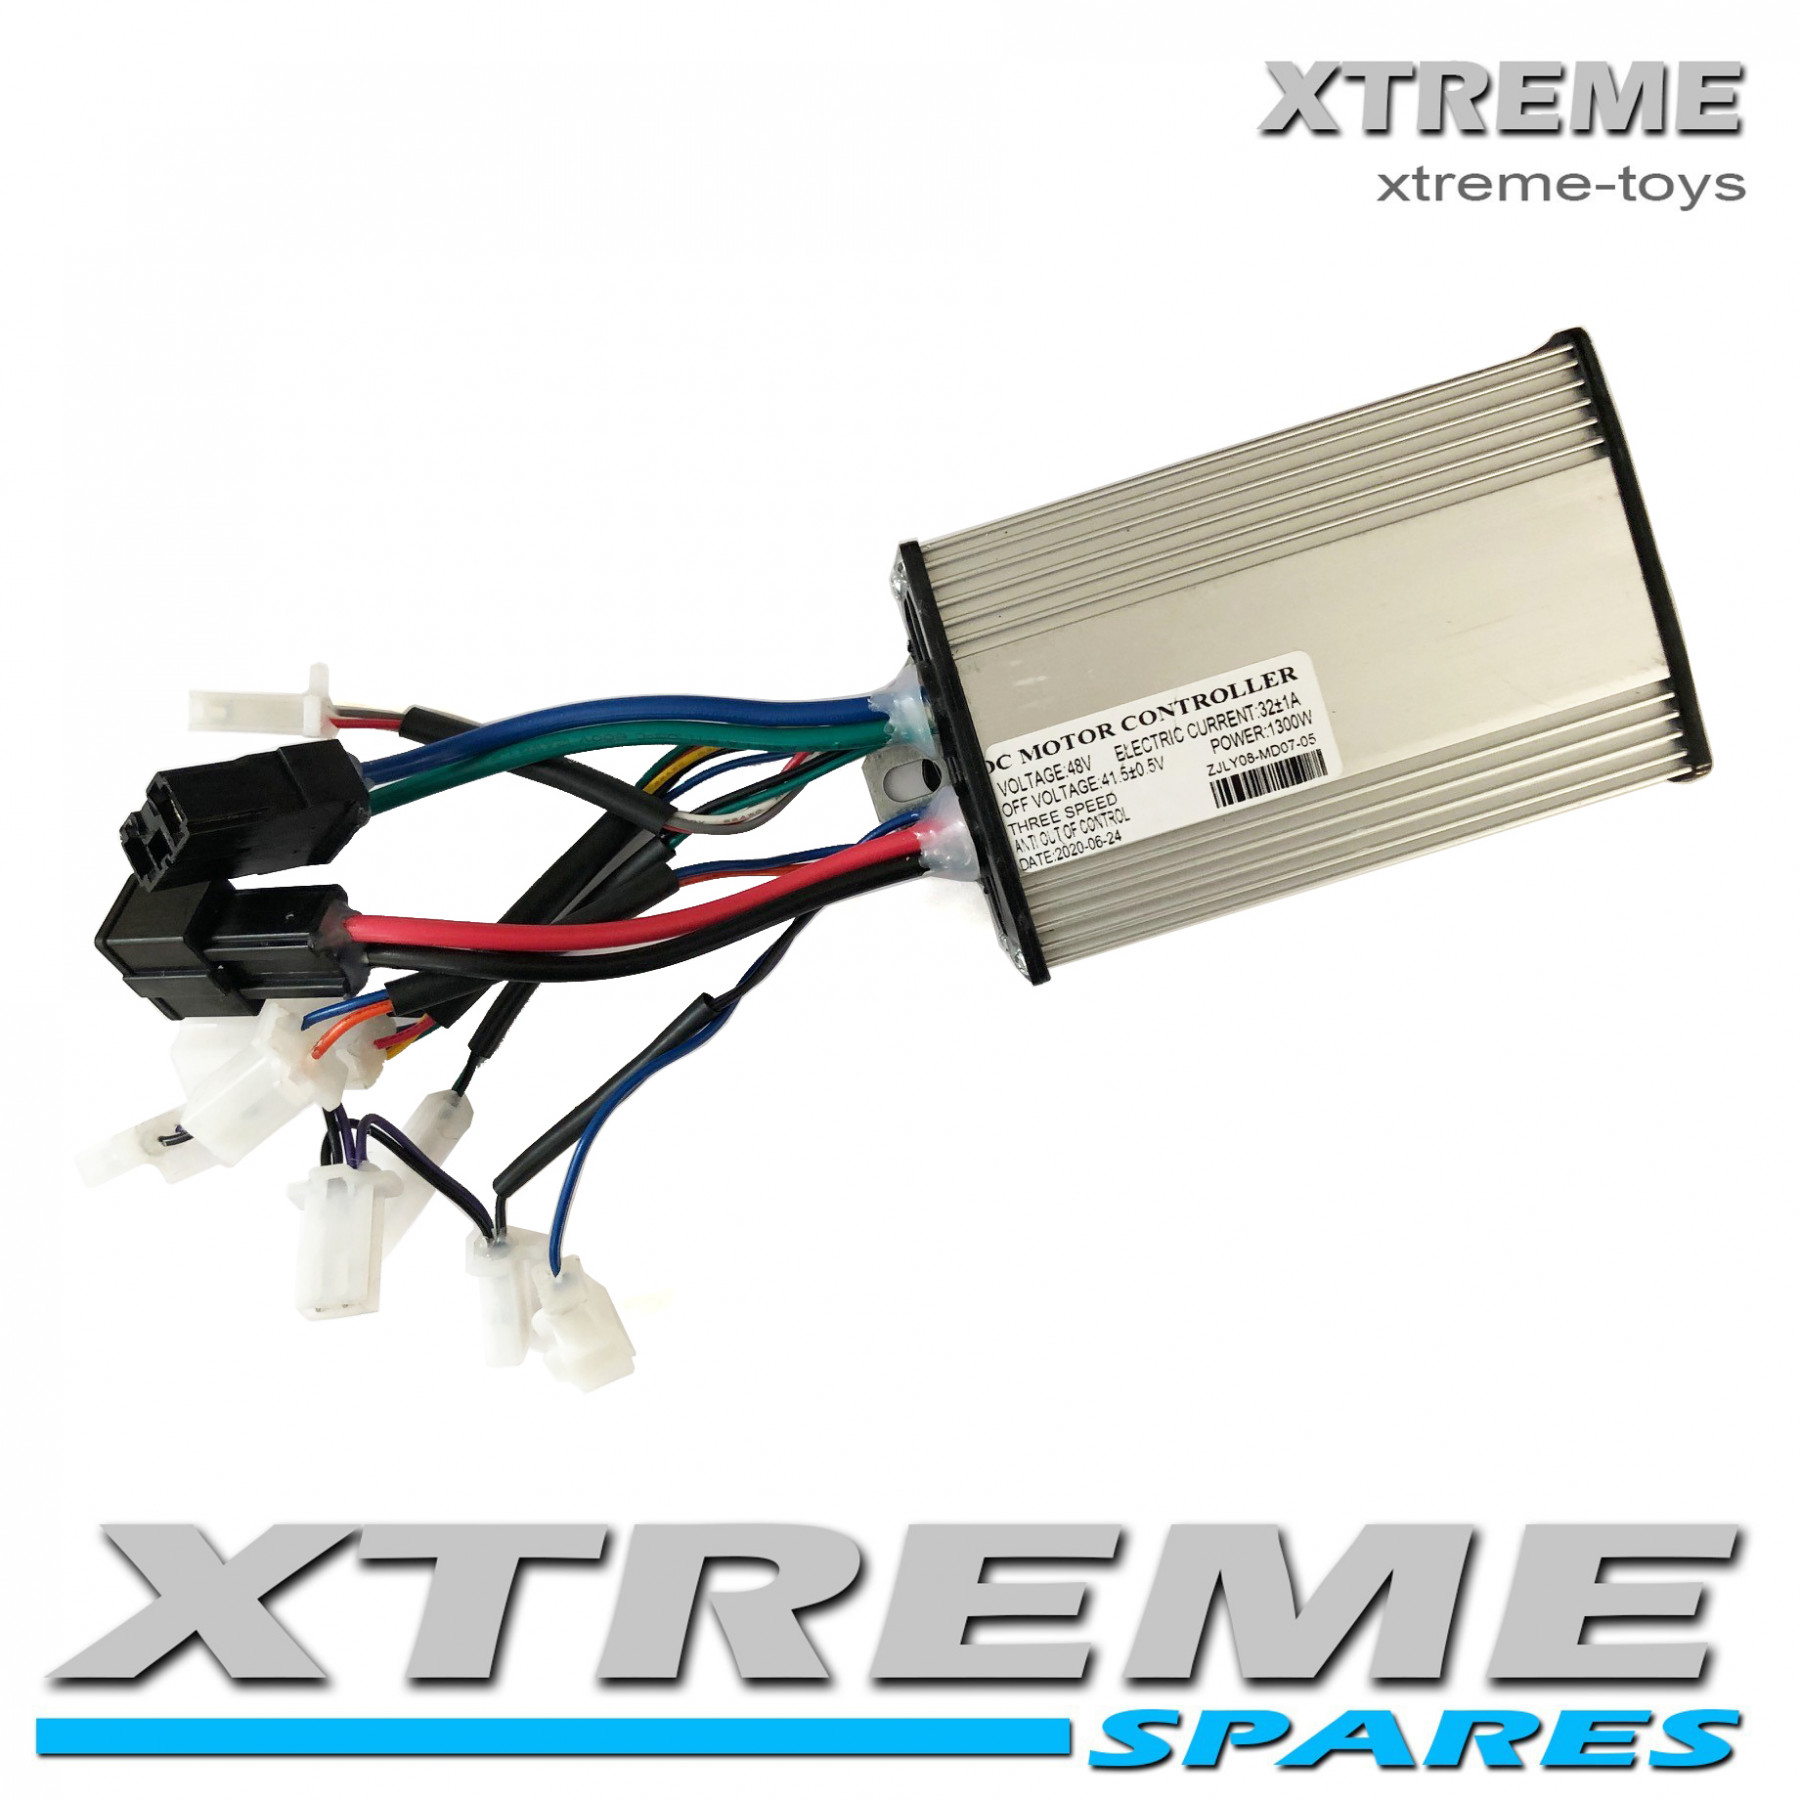 XTREME ELECTRIC XTM MX-PRO 48V 1300W LITHIUM REPLACEMENT SPEED CONTROLLER